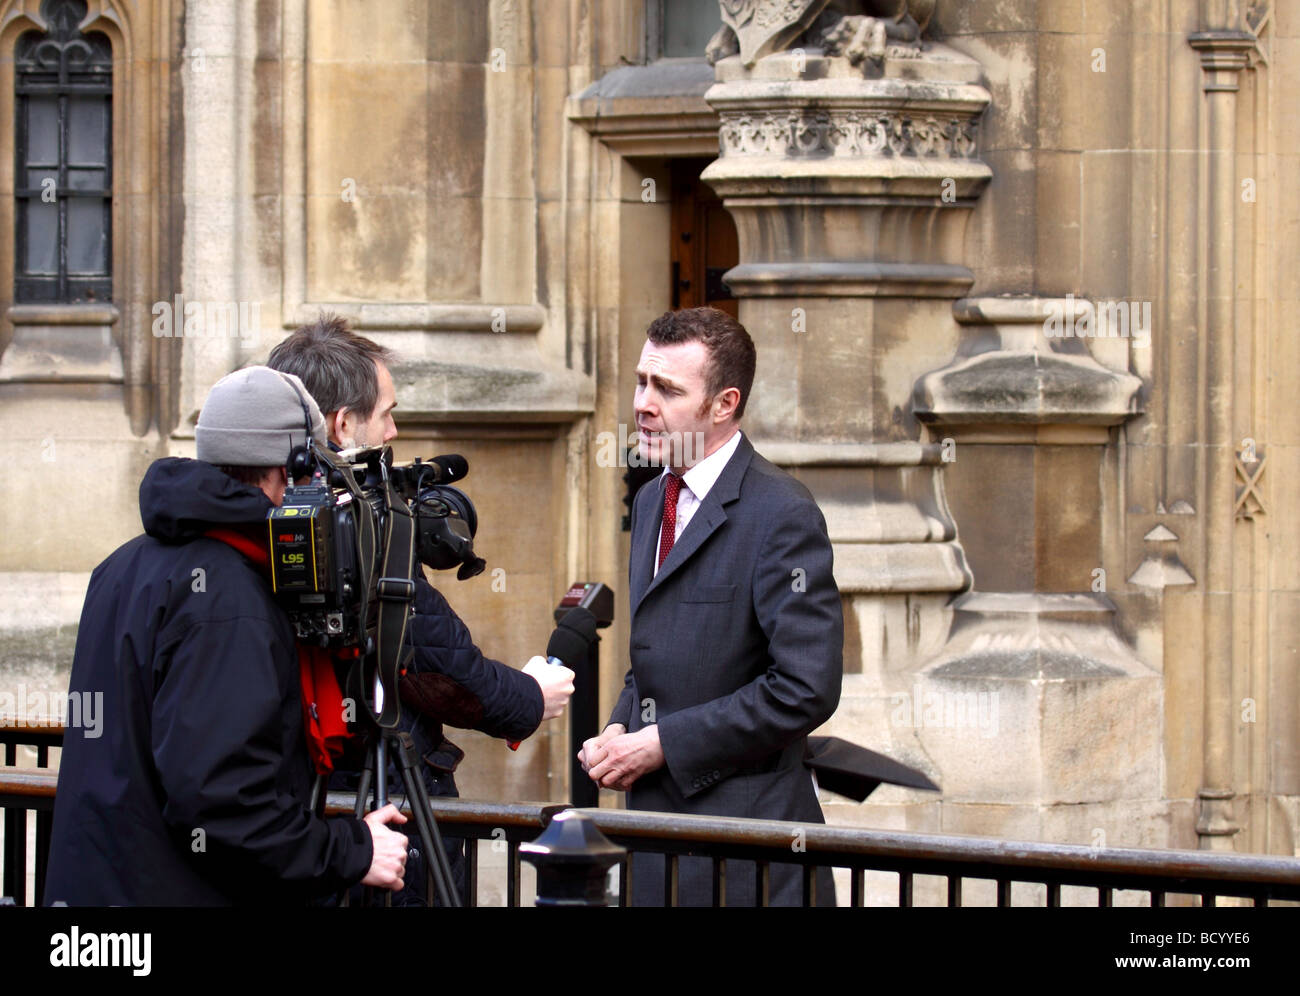 Adam Price, Plaid Cymru Member of Parliament for Carmarthen East and Dinefwr outside the Houses of Parliament Westminster - Stock Image